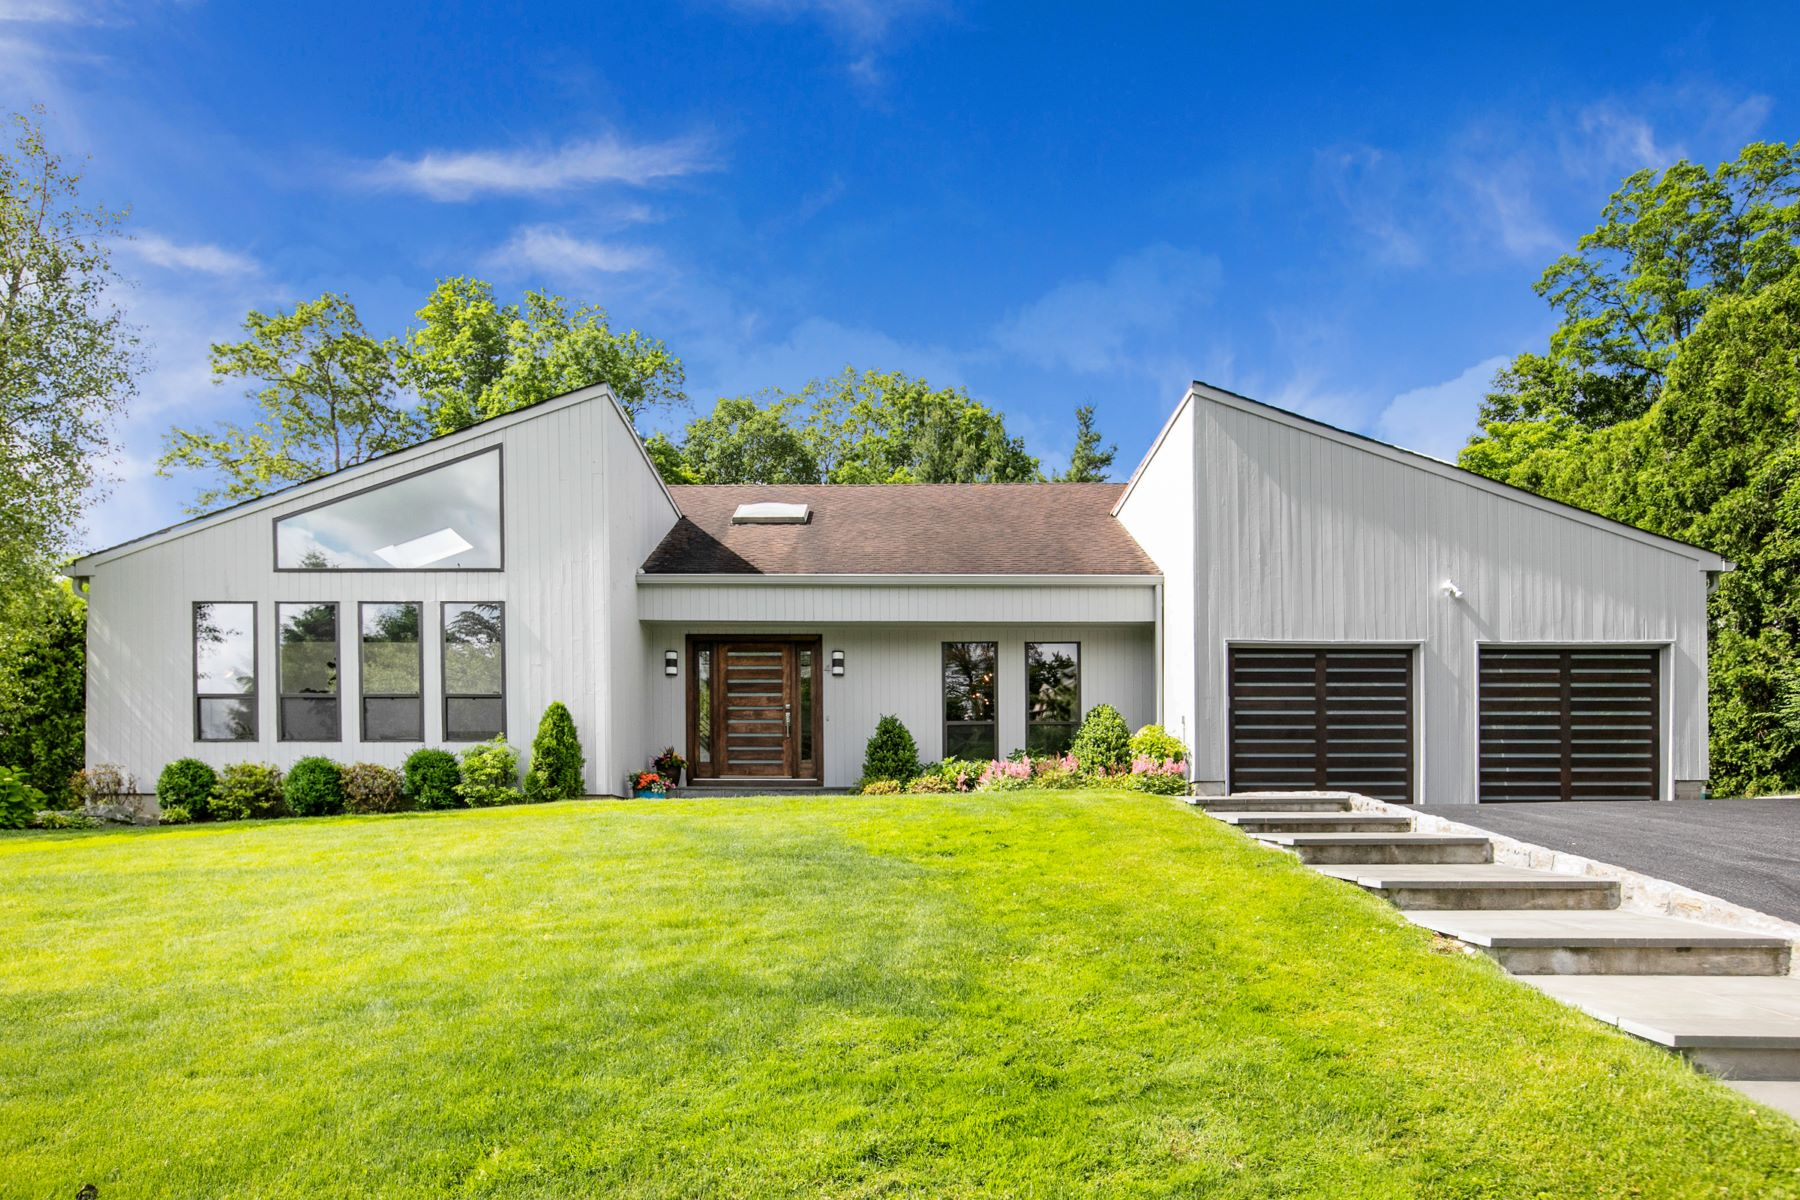 Single Family Homes for Active at Open Flow Contemporary Home 4 Katie Lane Mamaroneck, New York 10543 United States